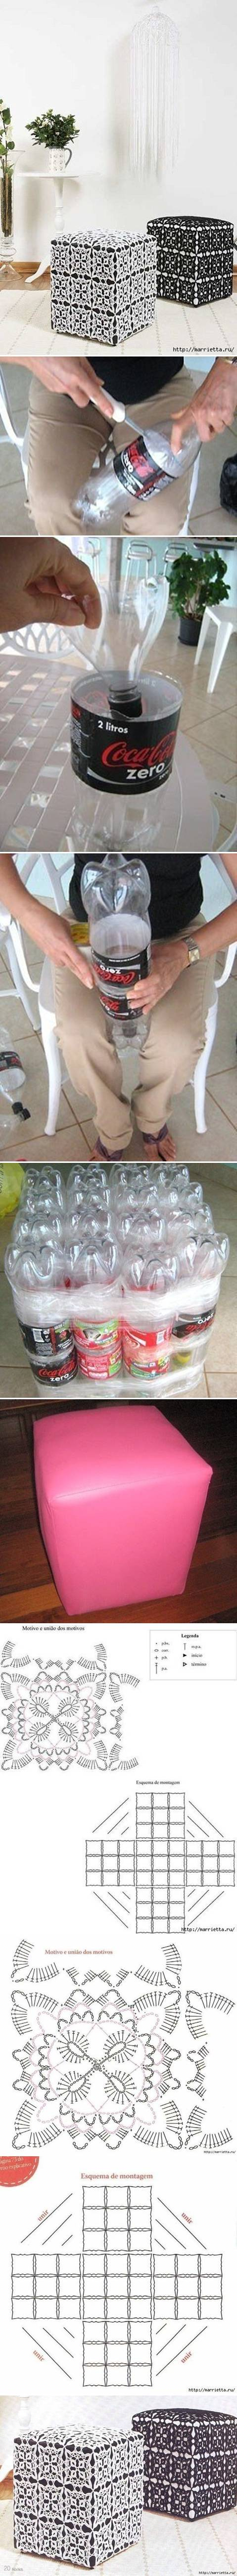 How to make Ottoman Out of Plastic Water Bottles step by step DIY tutorial instructions